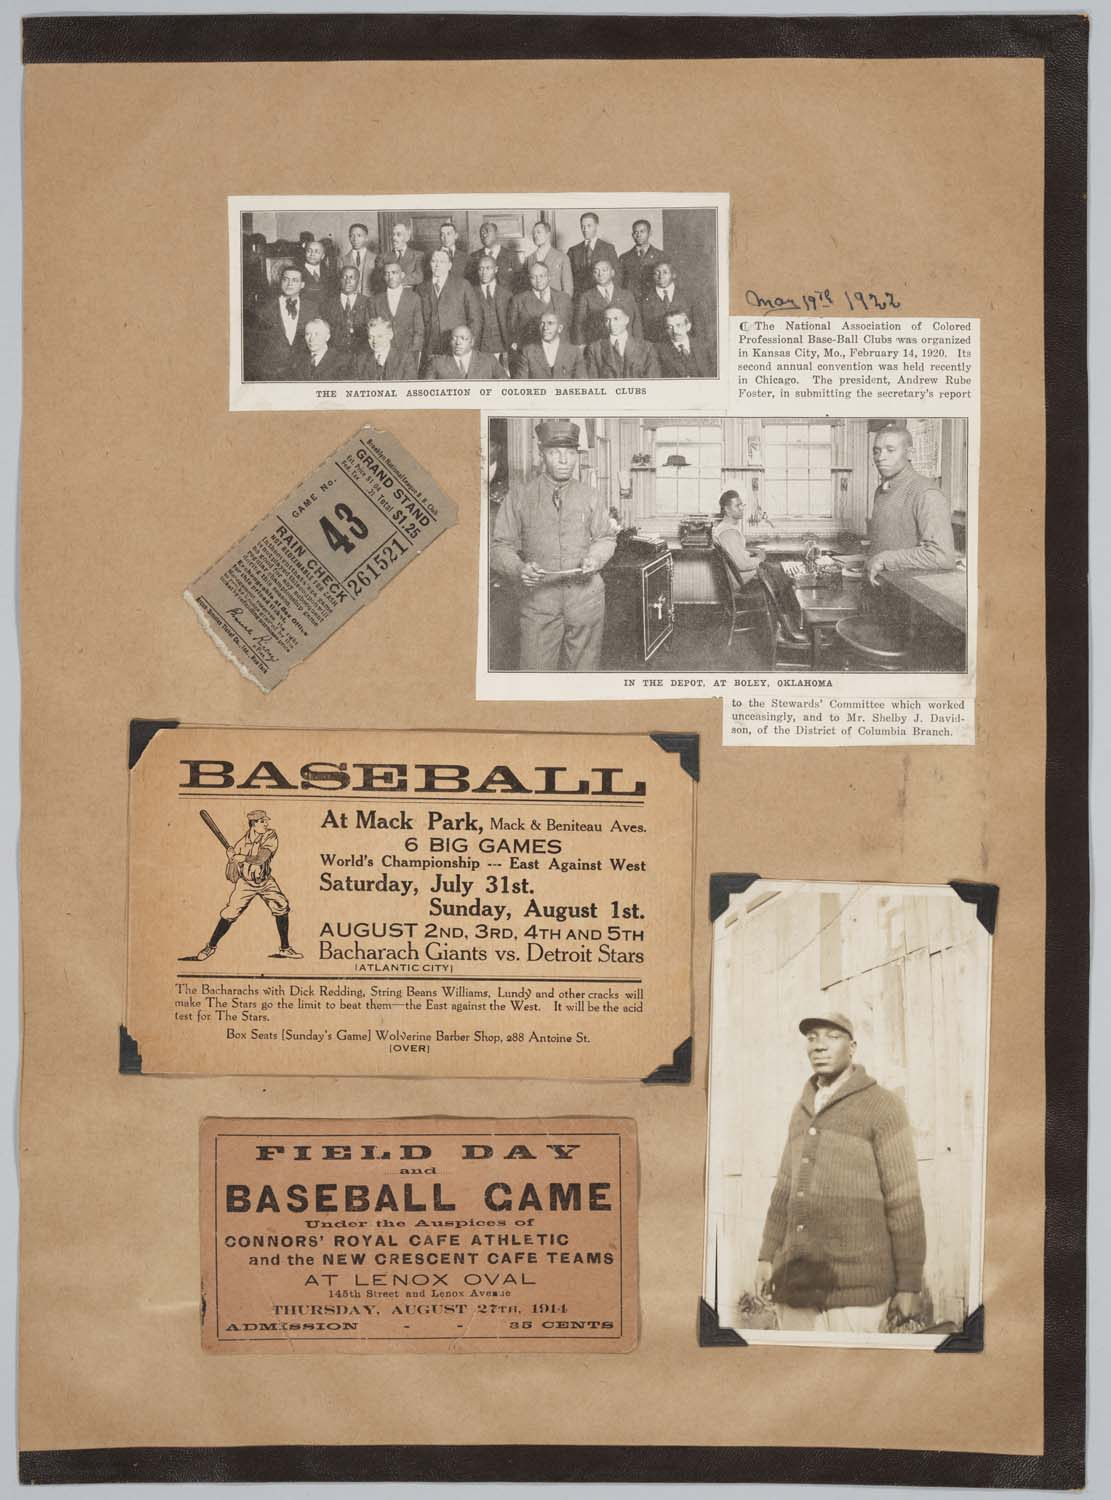 recto page featuring a collage of baseball images: a ticket stub, a clipping about the National Association of Colored Baseball Clubs, a photograph of a player, and a couple of advertisements for games